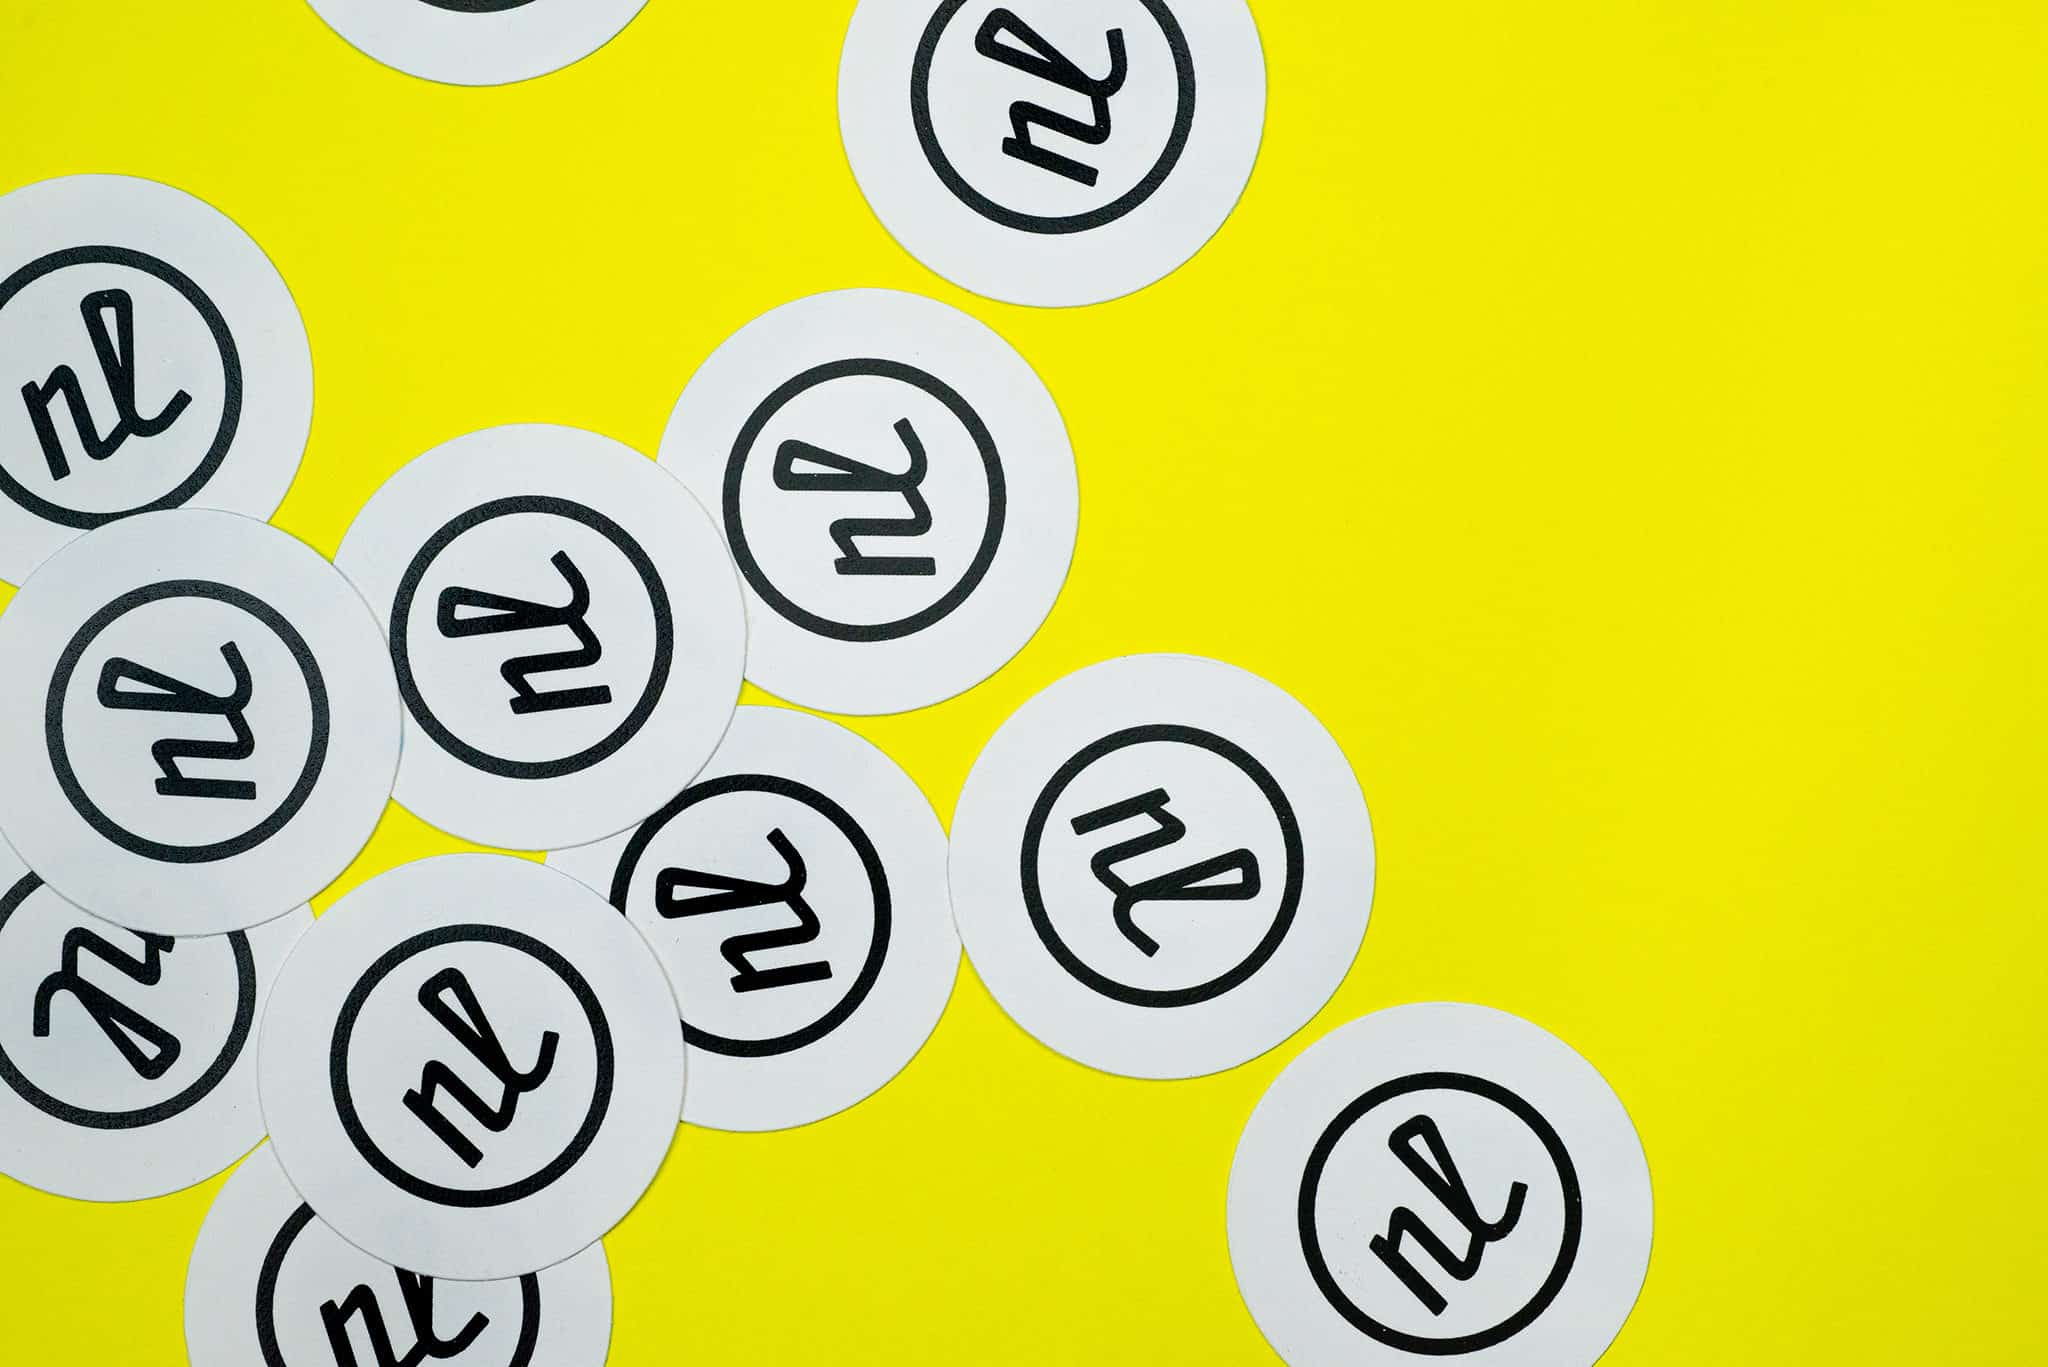 Letterpress printed stickers for Nathan Lindstrom Photography | Designed by Field of Study: A branding and graphic design consultancy | Houston TX | Jennifer Blanco & John Earles